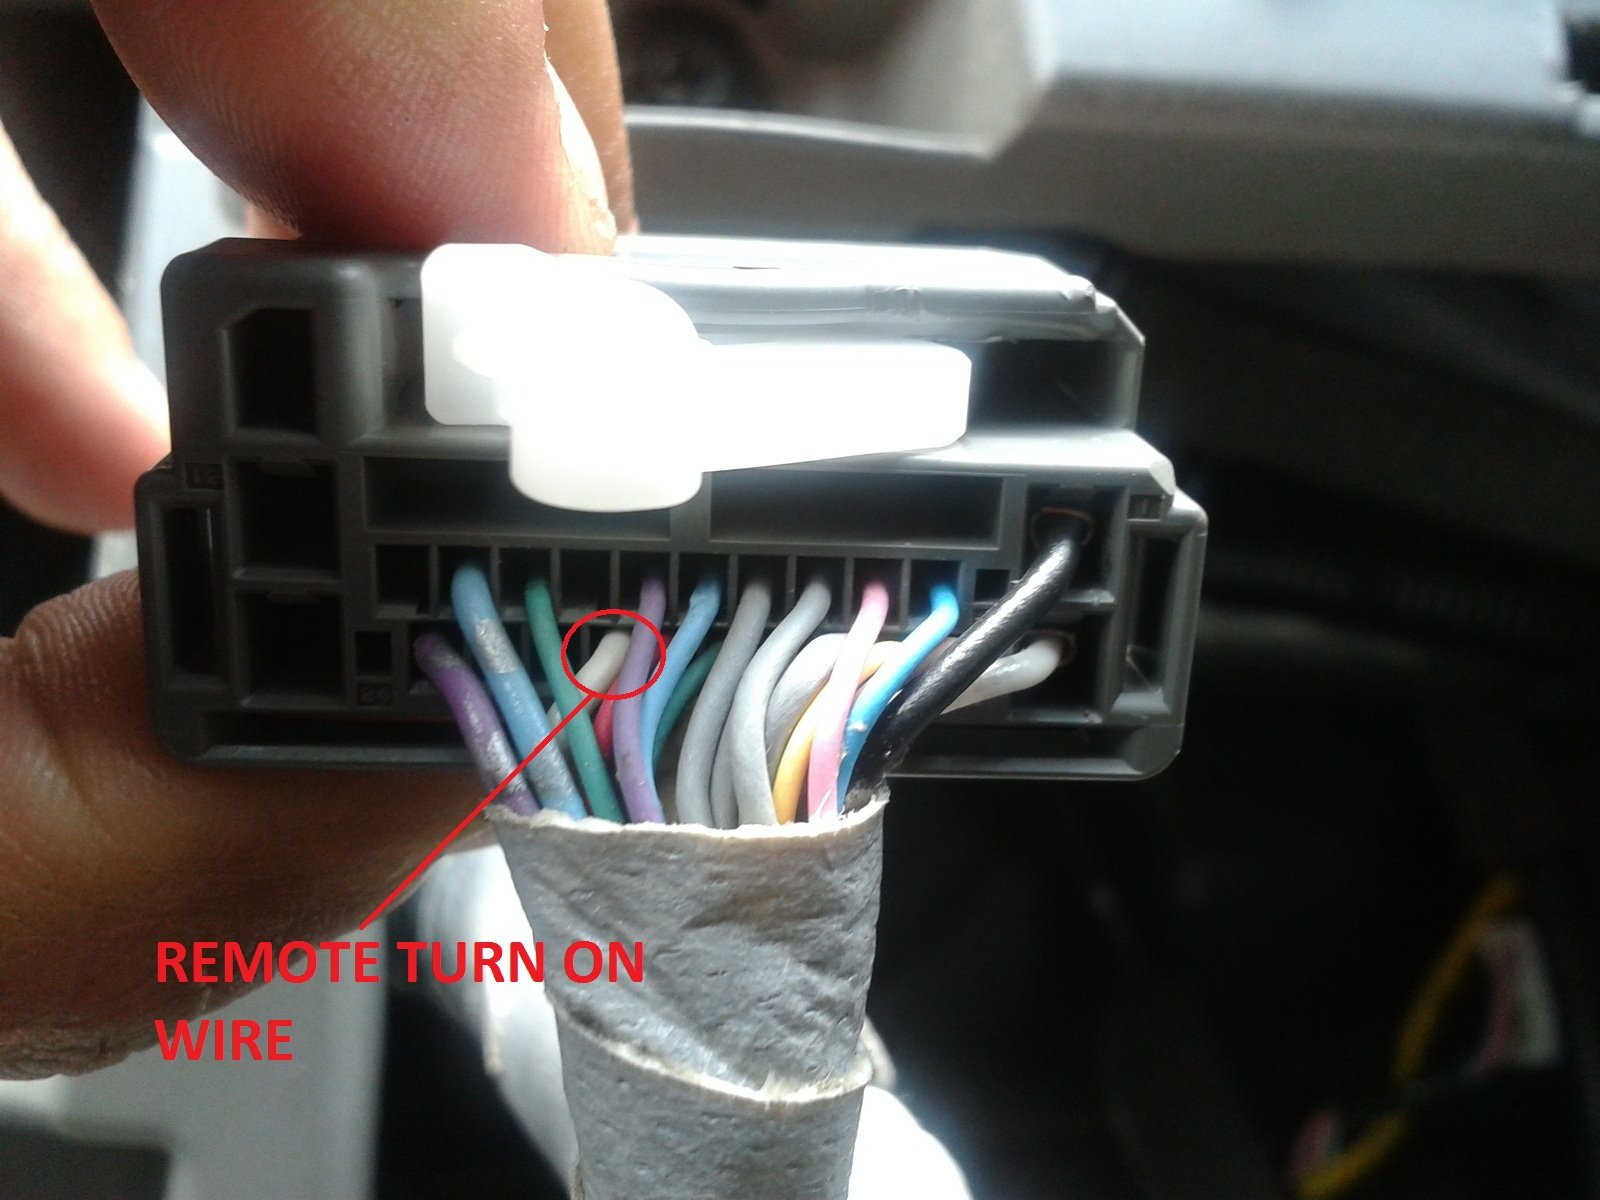 9901d1343953312 code wires premium audio headunit civic ex coupe 20120802144720 code wires of premium audio headunit for a civic ex coupe page 2 Wiring Diagram for Speaker Connection at n-0.co